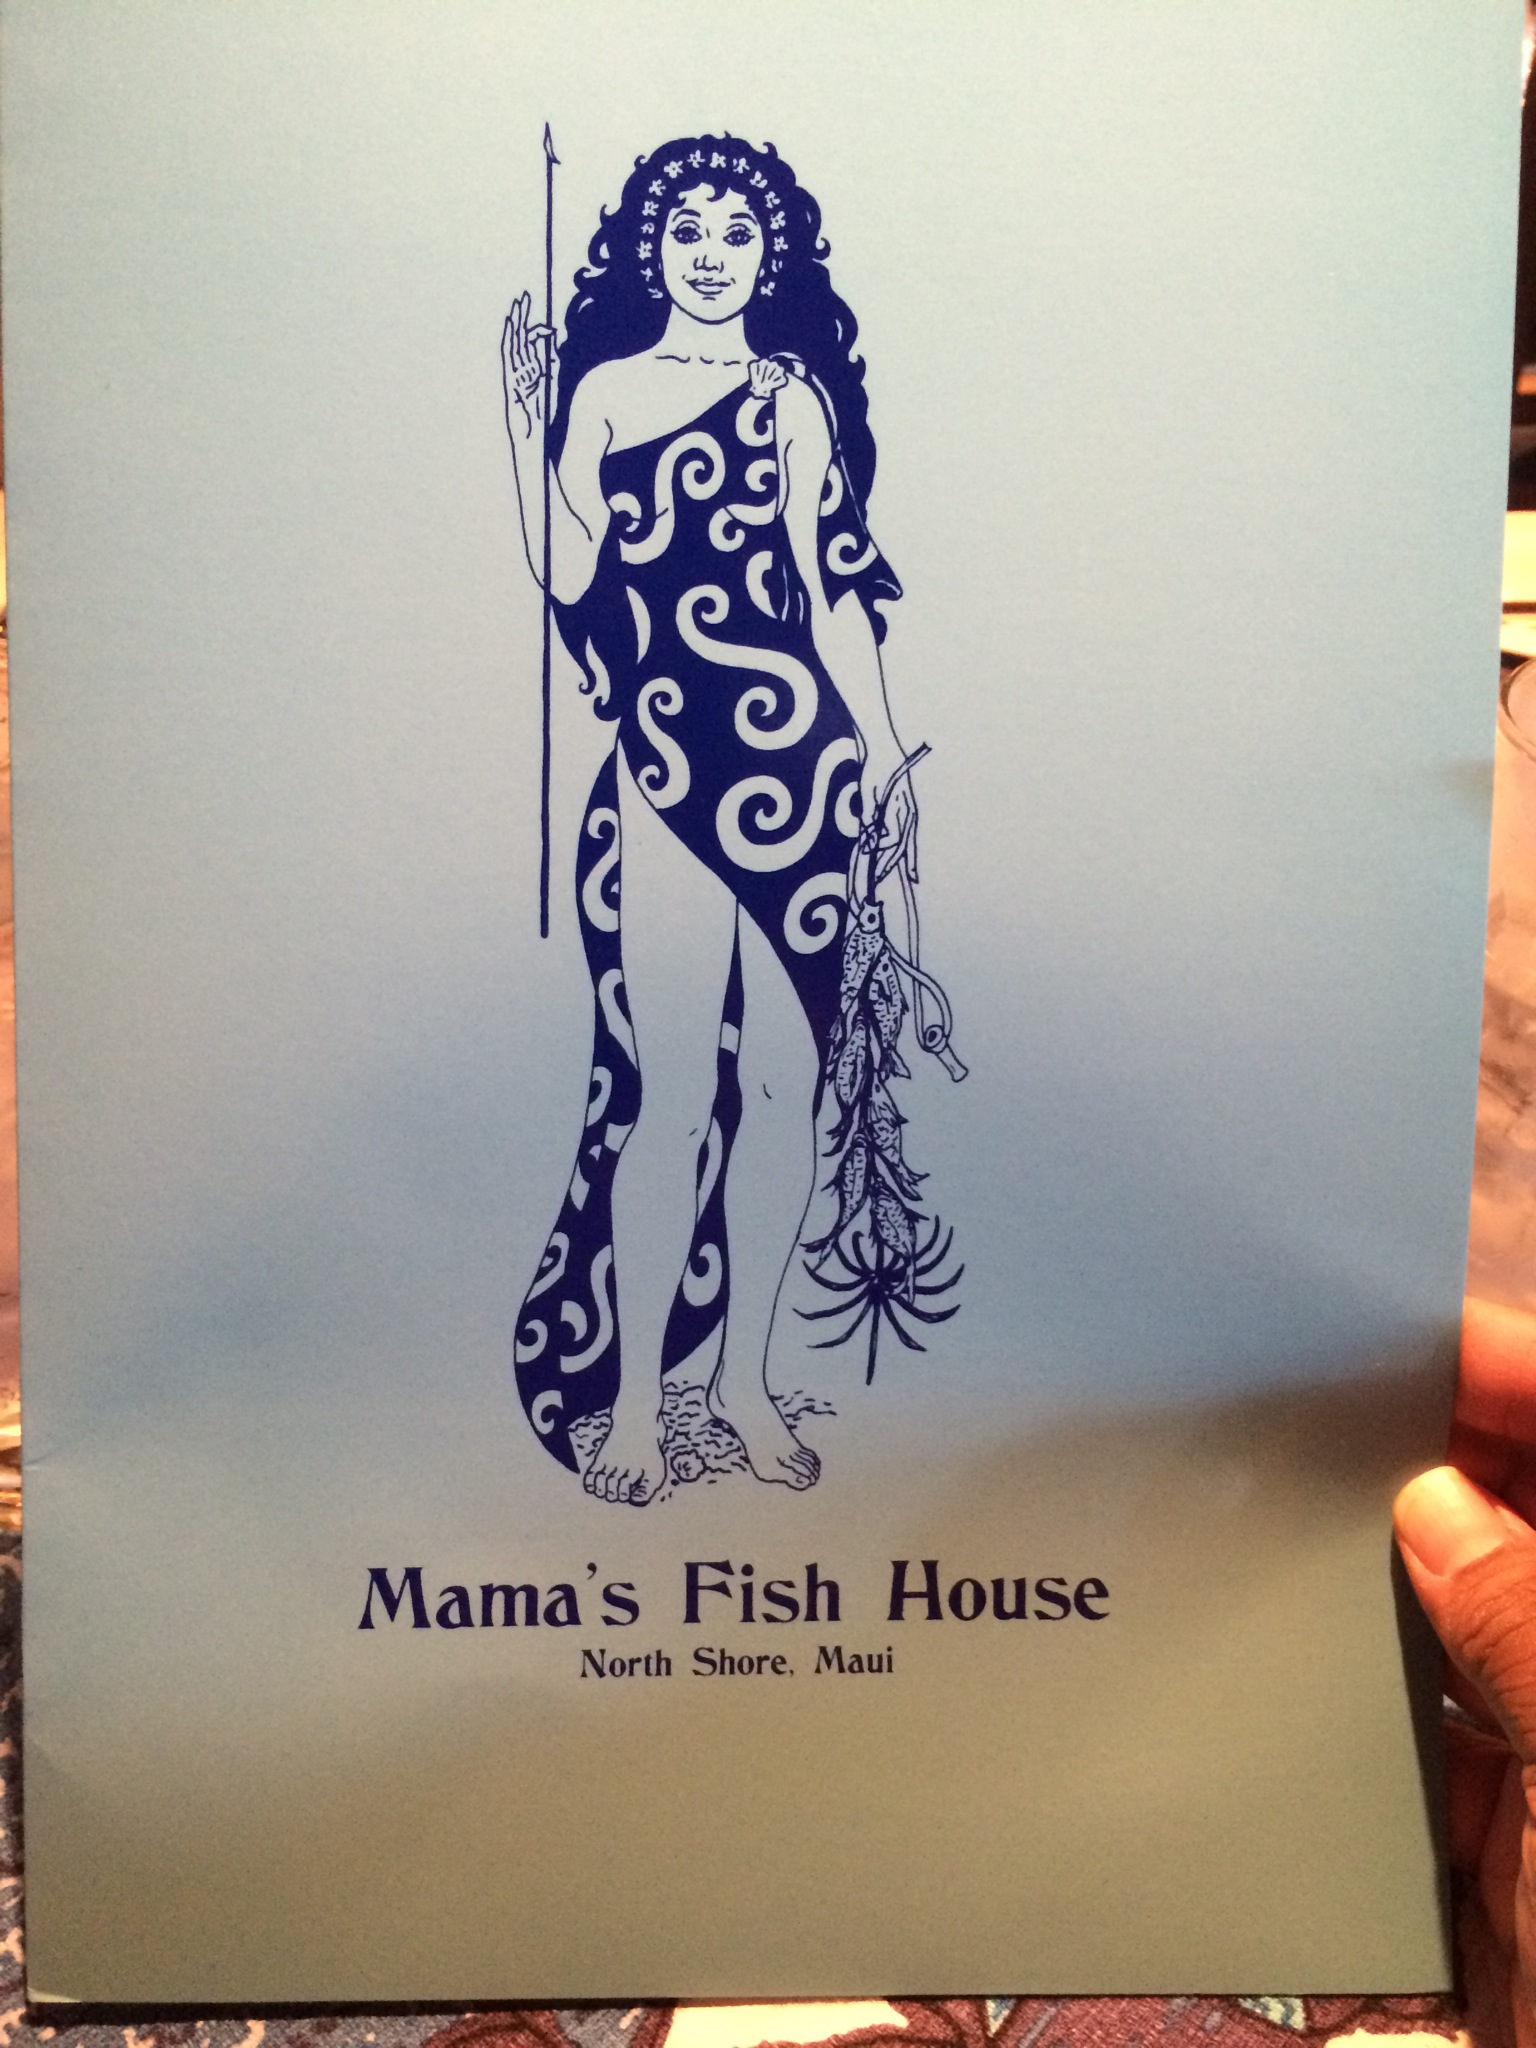 Mamas fish house paia hawaii where is rahul for Mamas fish house lunch menu